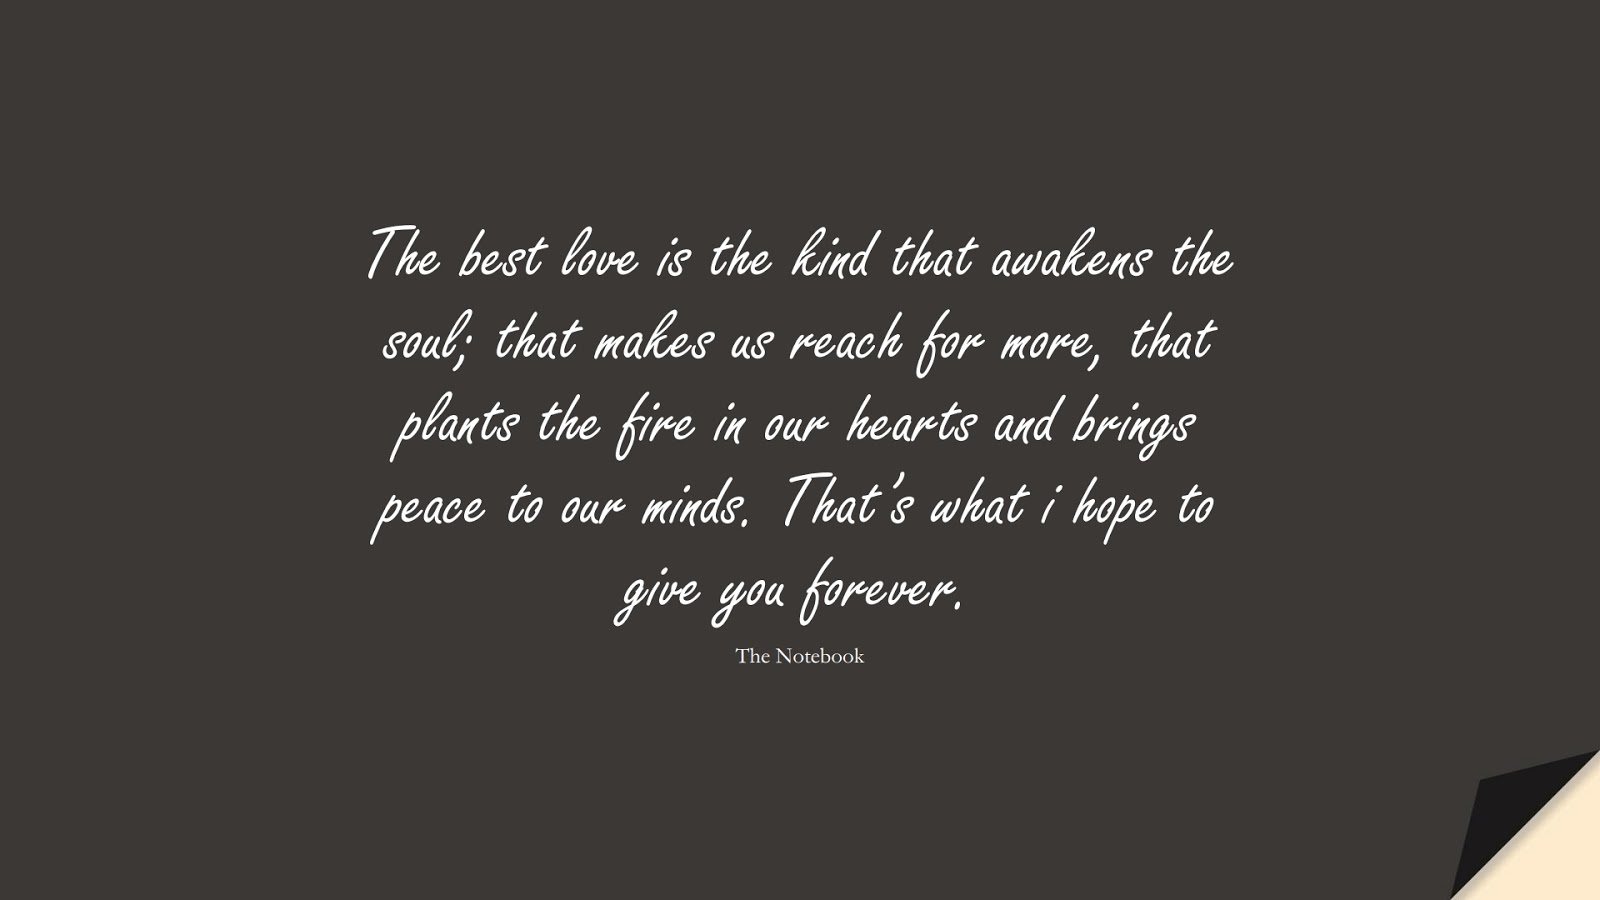 The best love is the kind that awakens the soul; that makes us reach for more, that plants the fire in our hearts and brings peace to our minds. That's what i hope to give you forever. (The Notebook);  #LoveQuotes